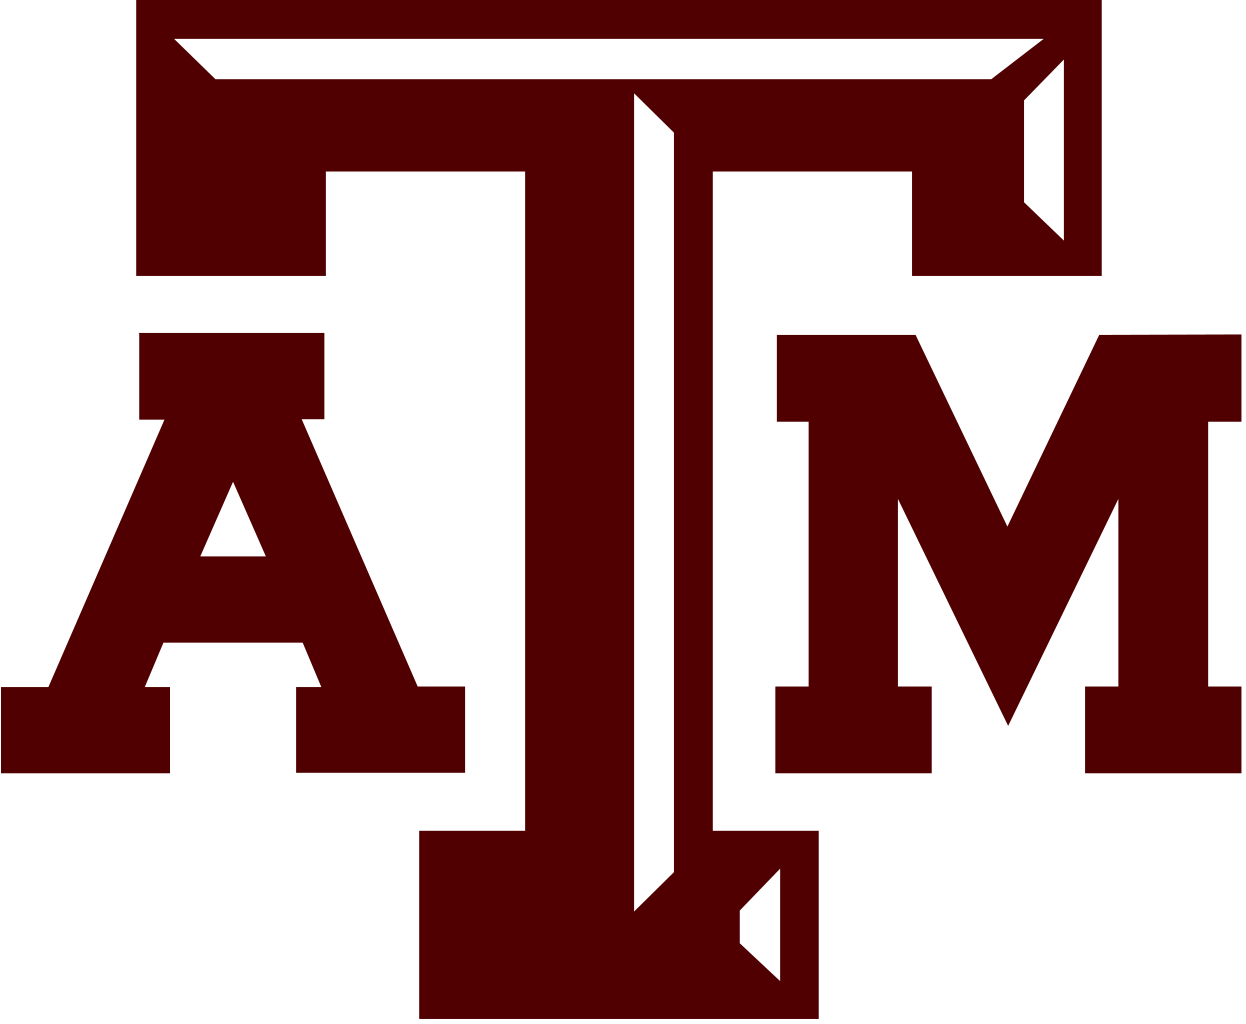 Texas logo png. File a m university